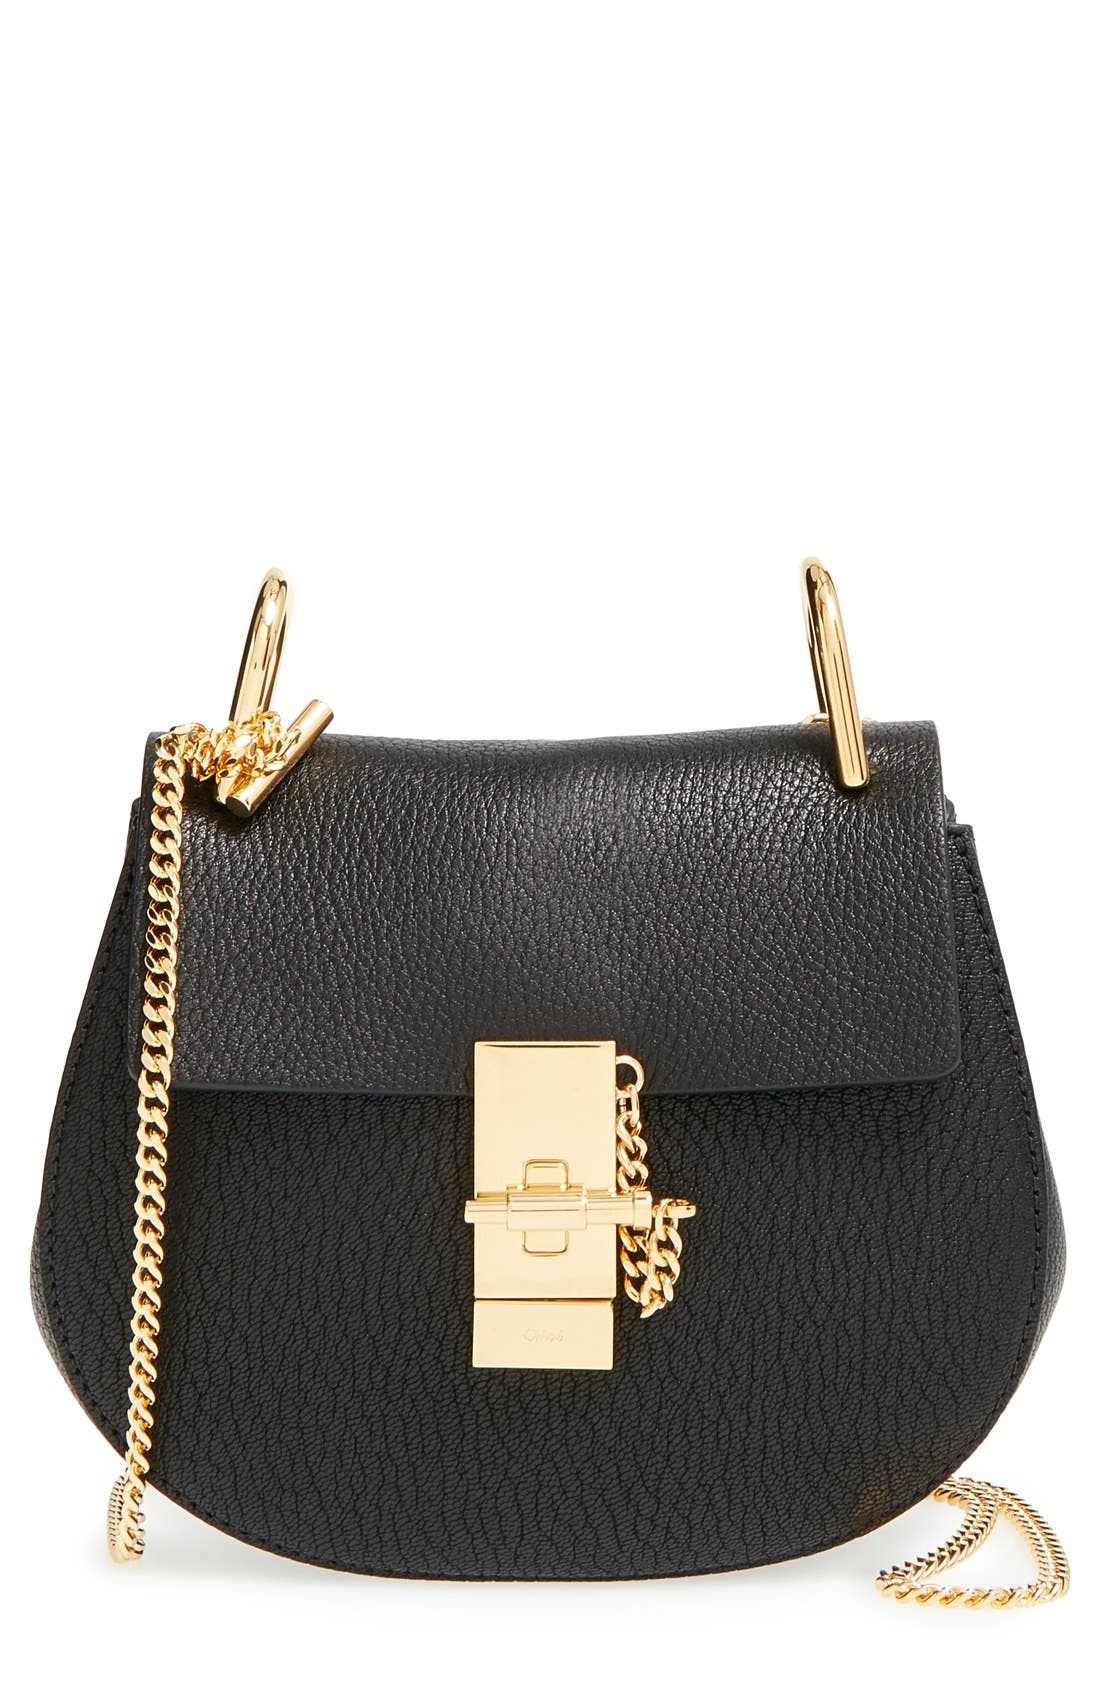 Chloé 'Mini Drew' Leather Shoulder Bag